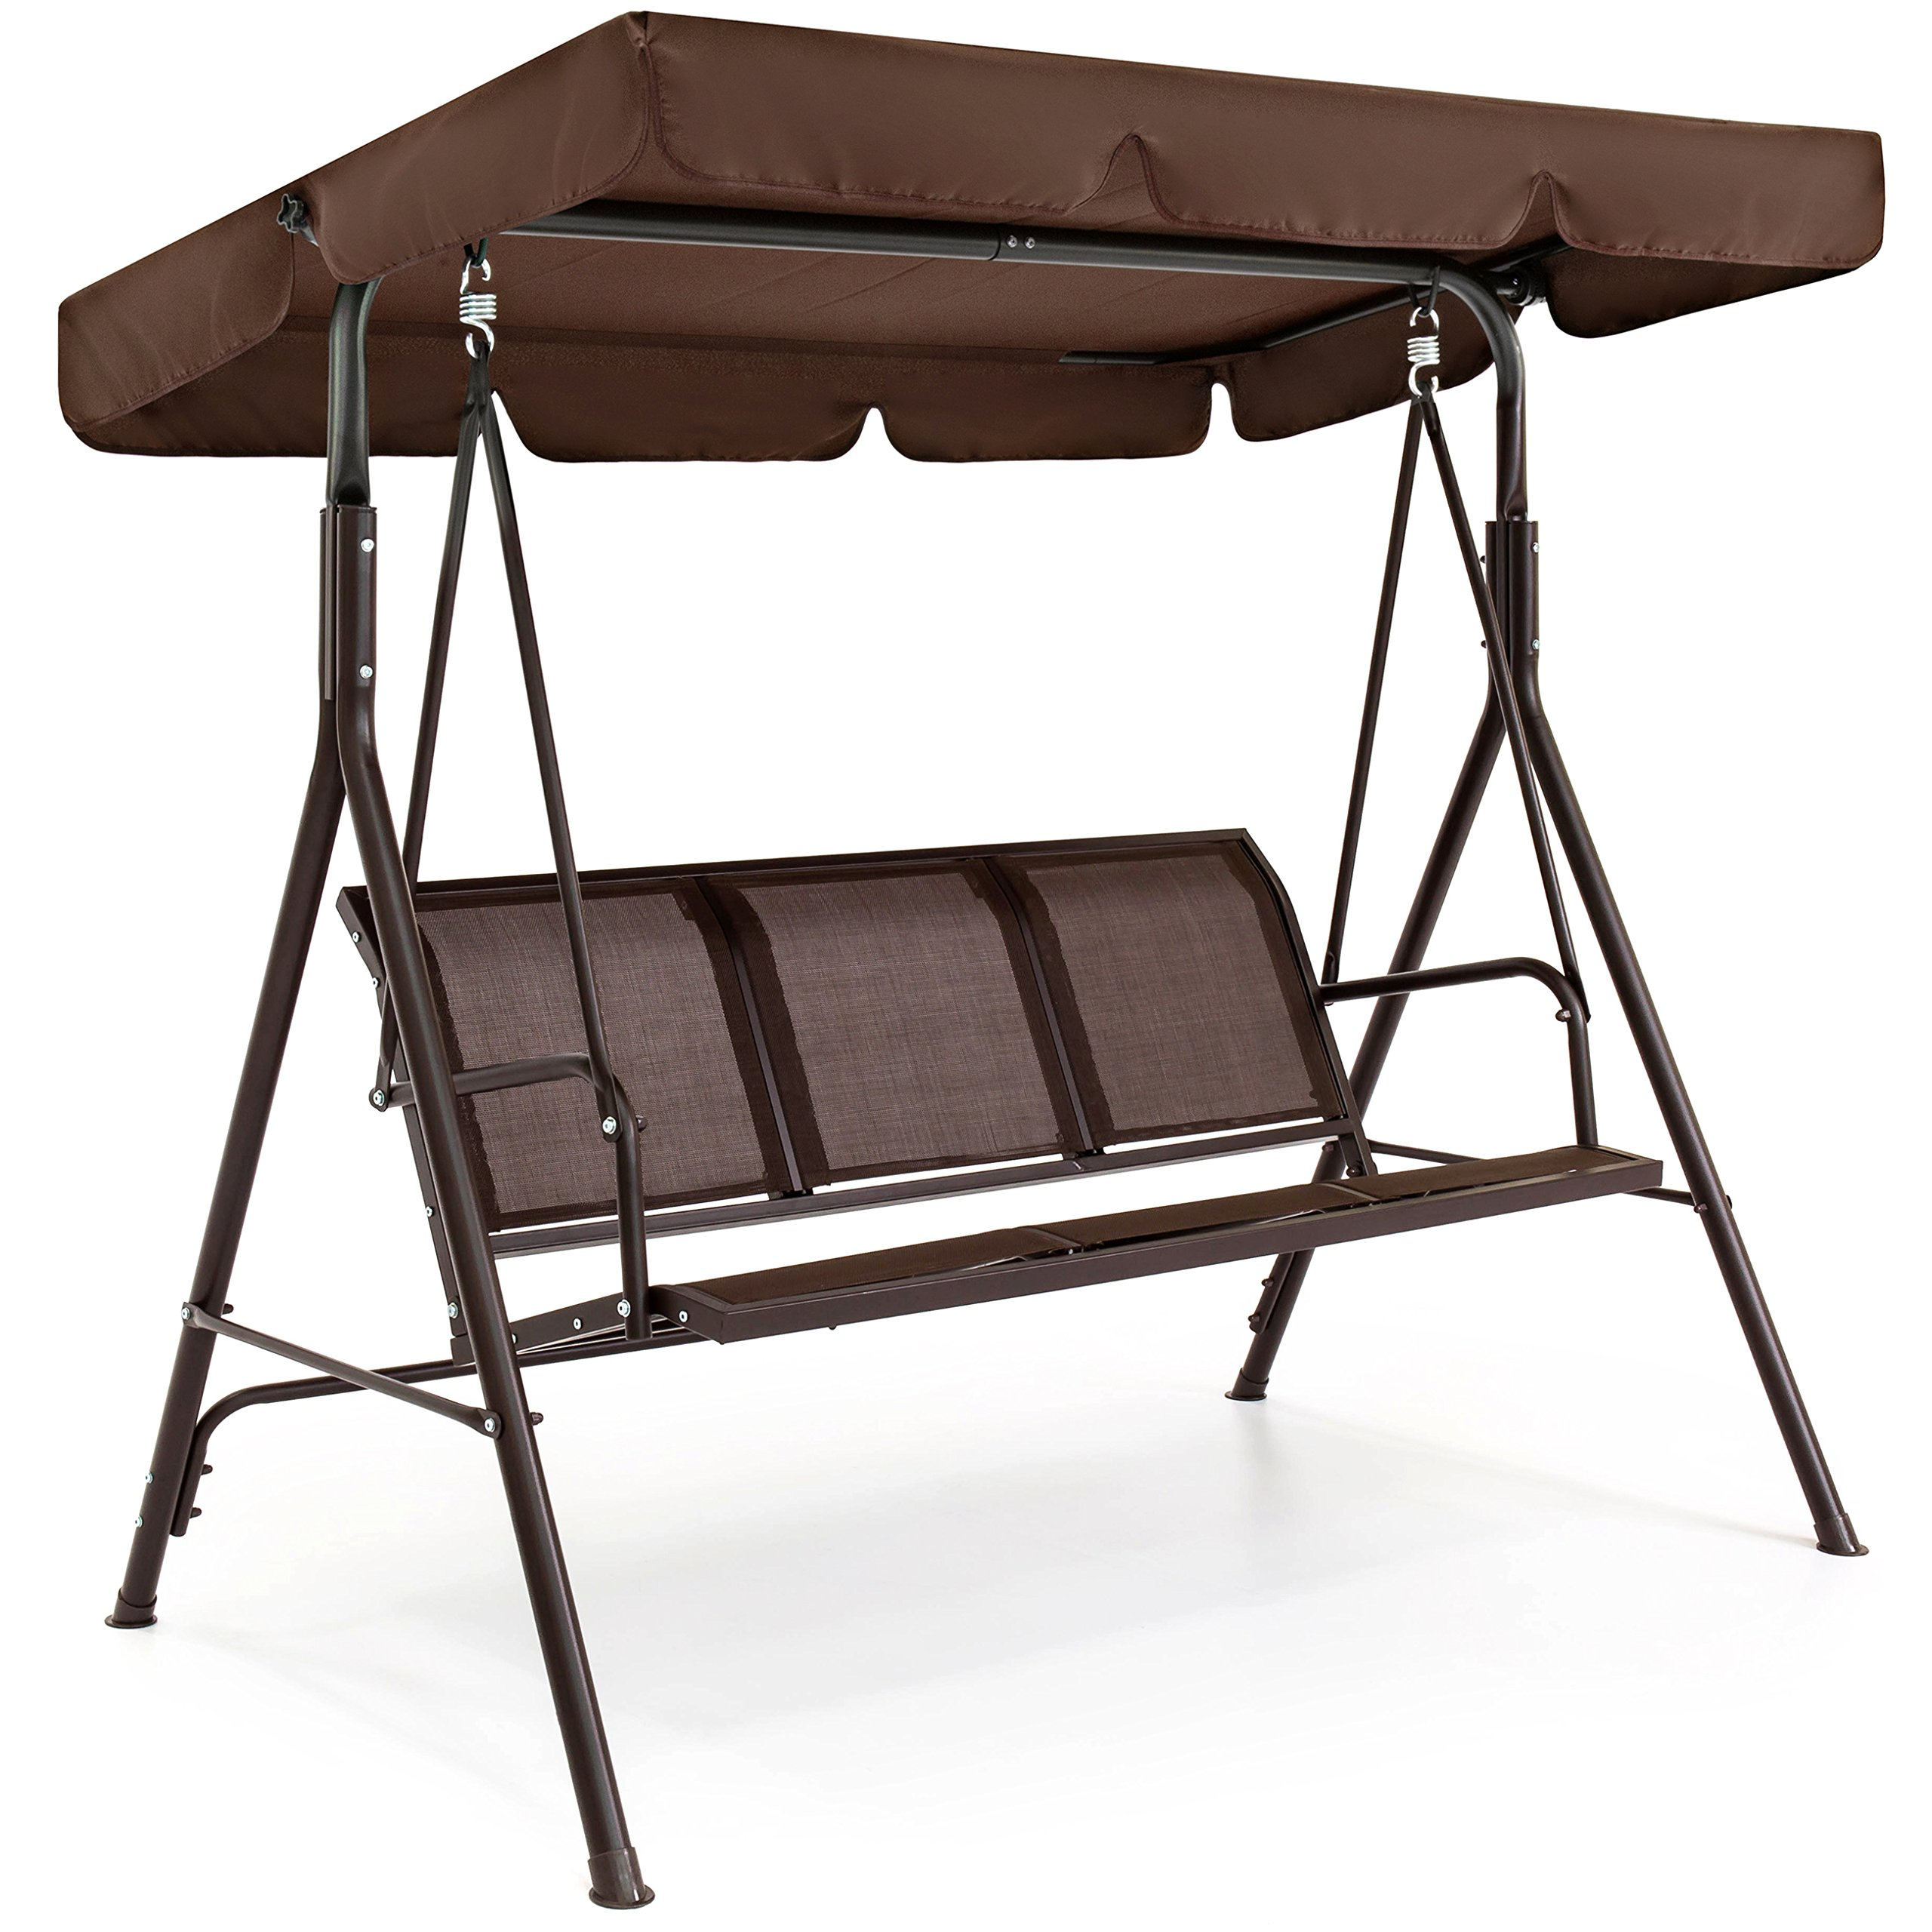 Best Choice Products 2-Person Outdoor Steel Polyester Convertible Canopy Swing Chair Bench w/Weather-Resistant Powder Finish, Brown by Best Choice Products